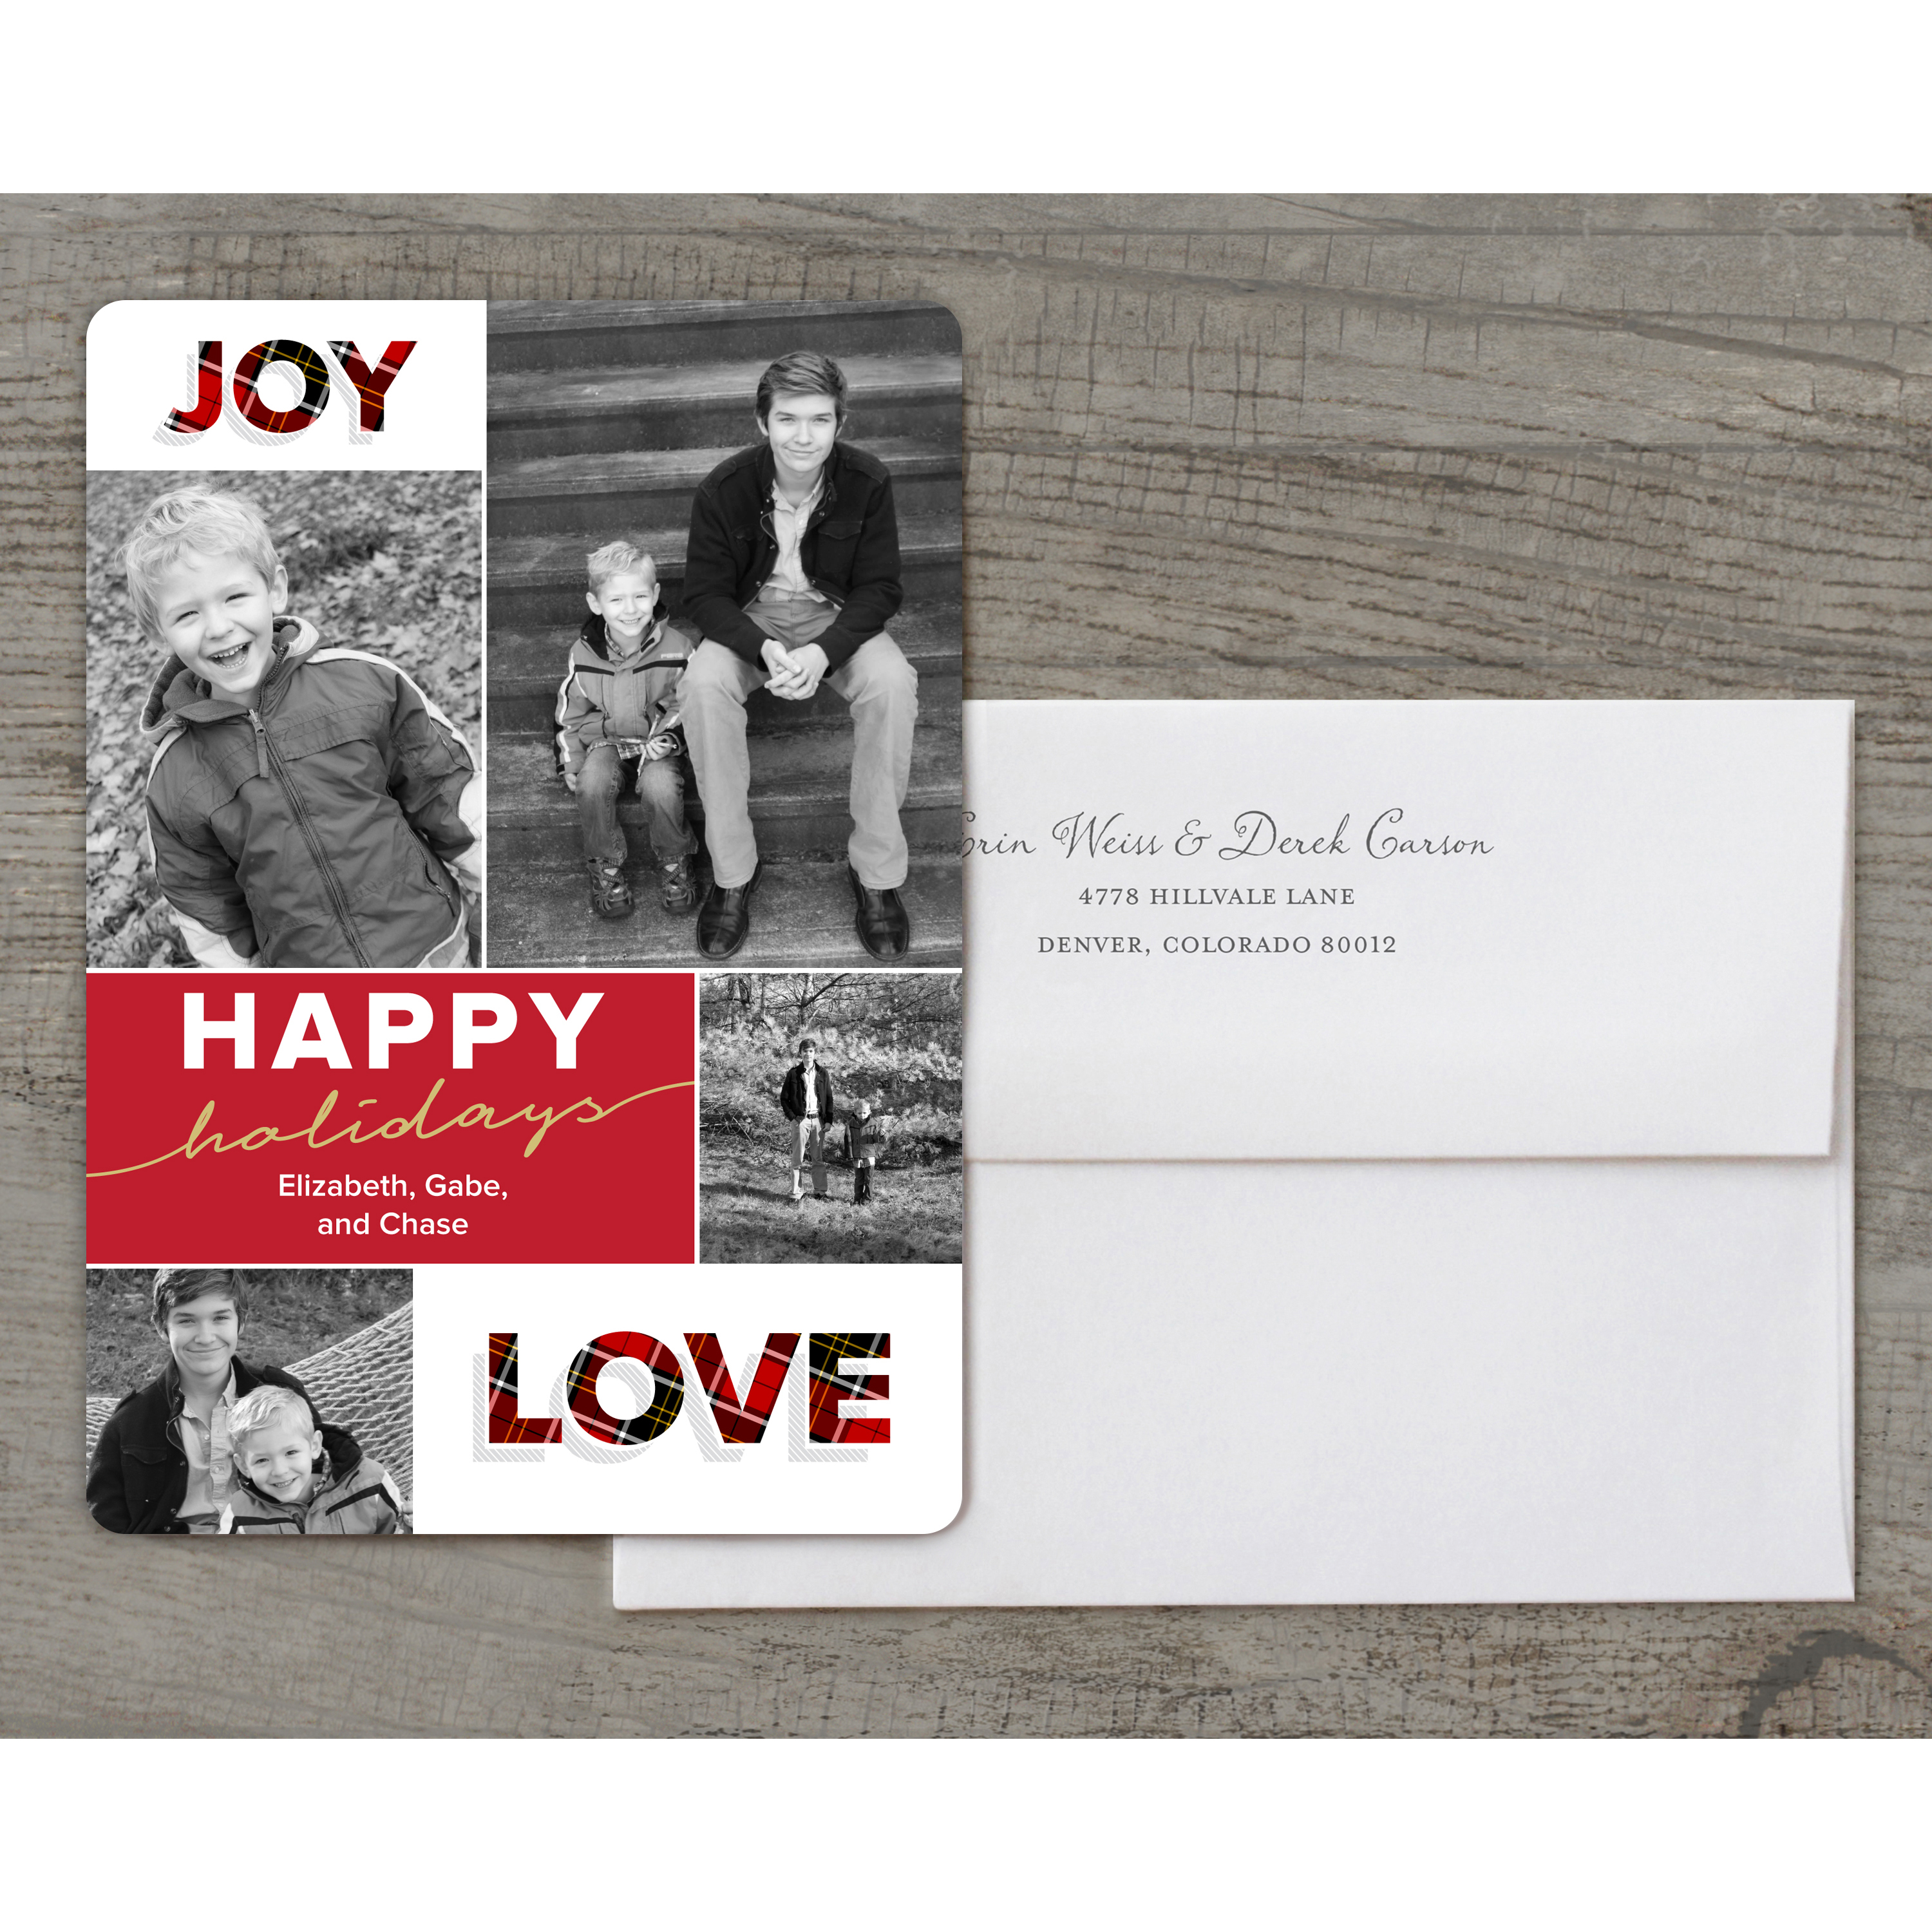 Joy Love Peace - Deluxe 5x7 Personalized Holiday Holiday Card